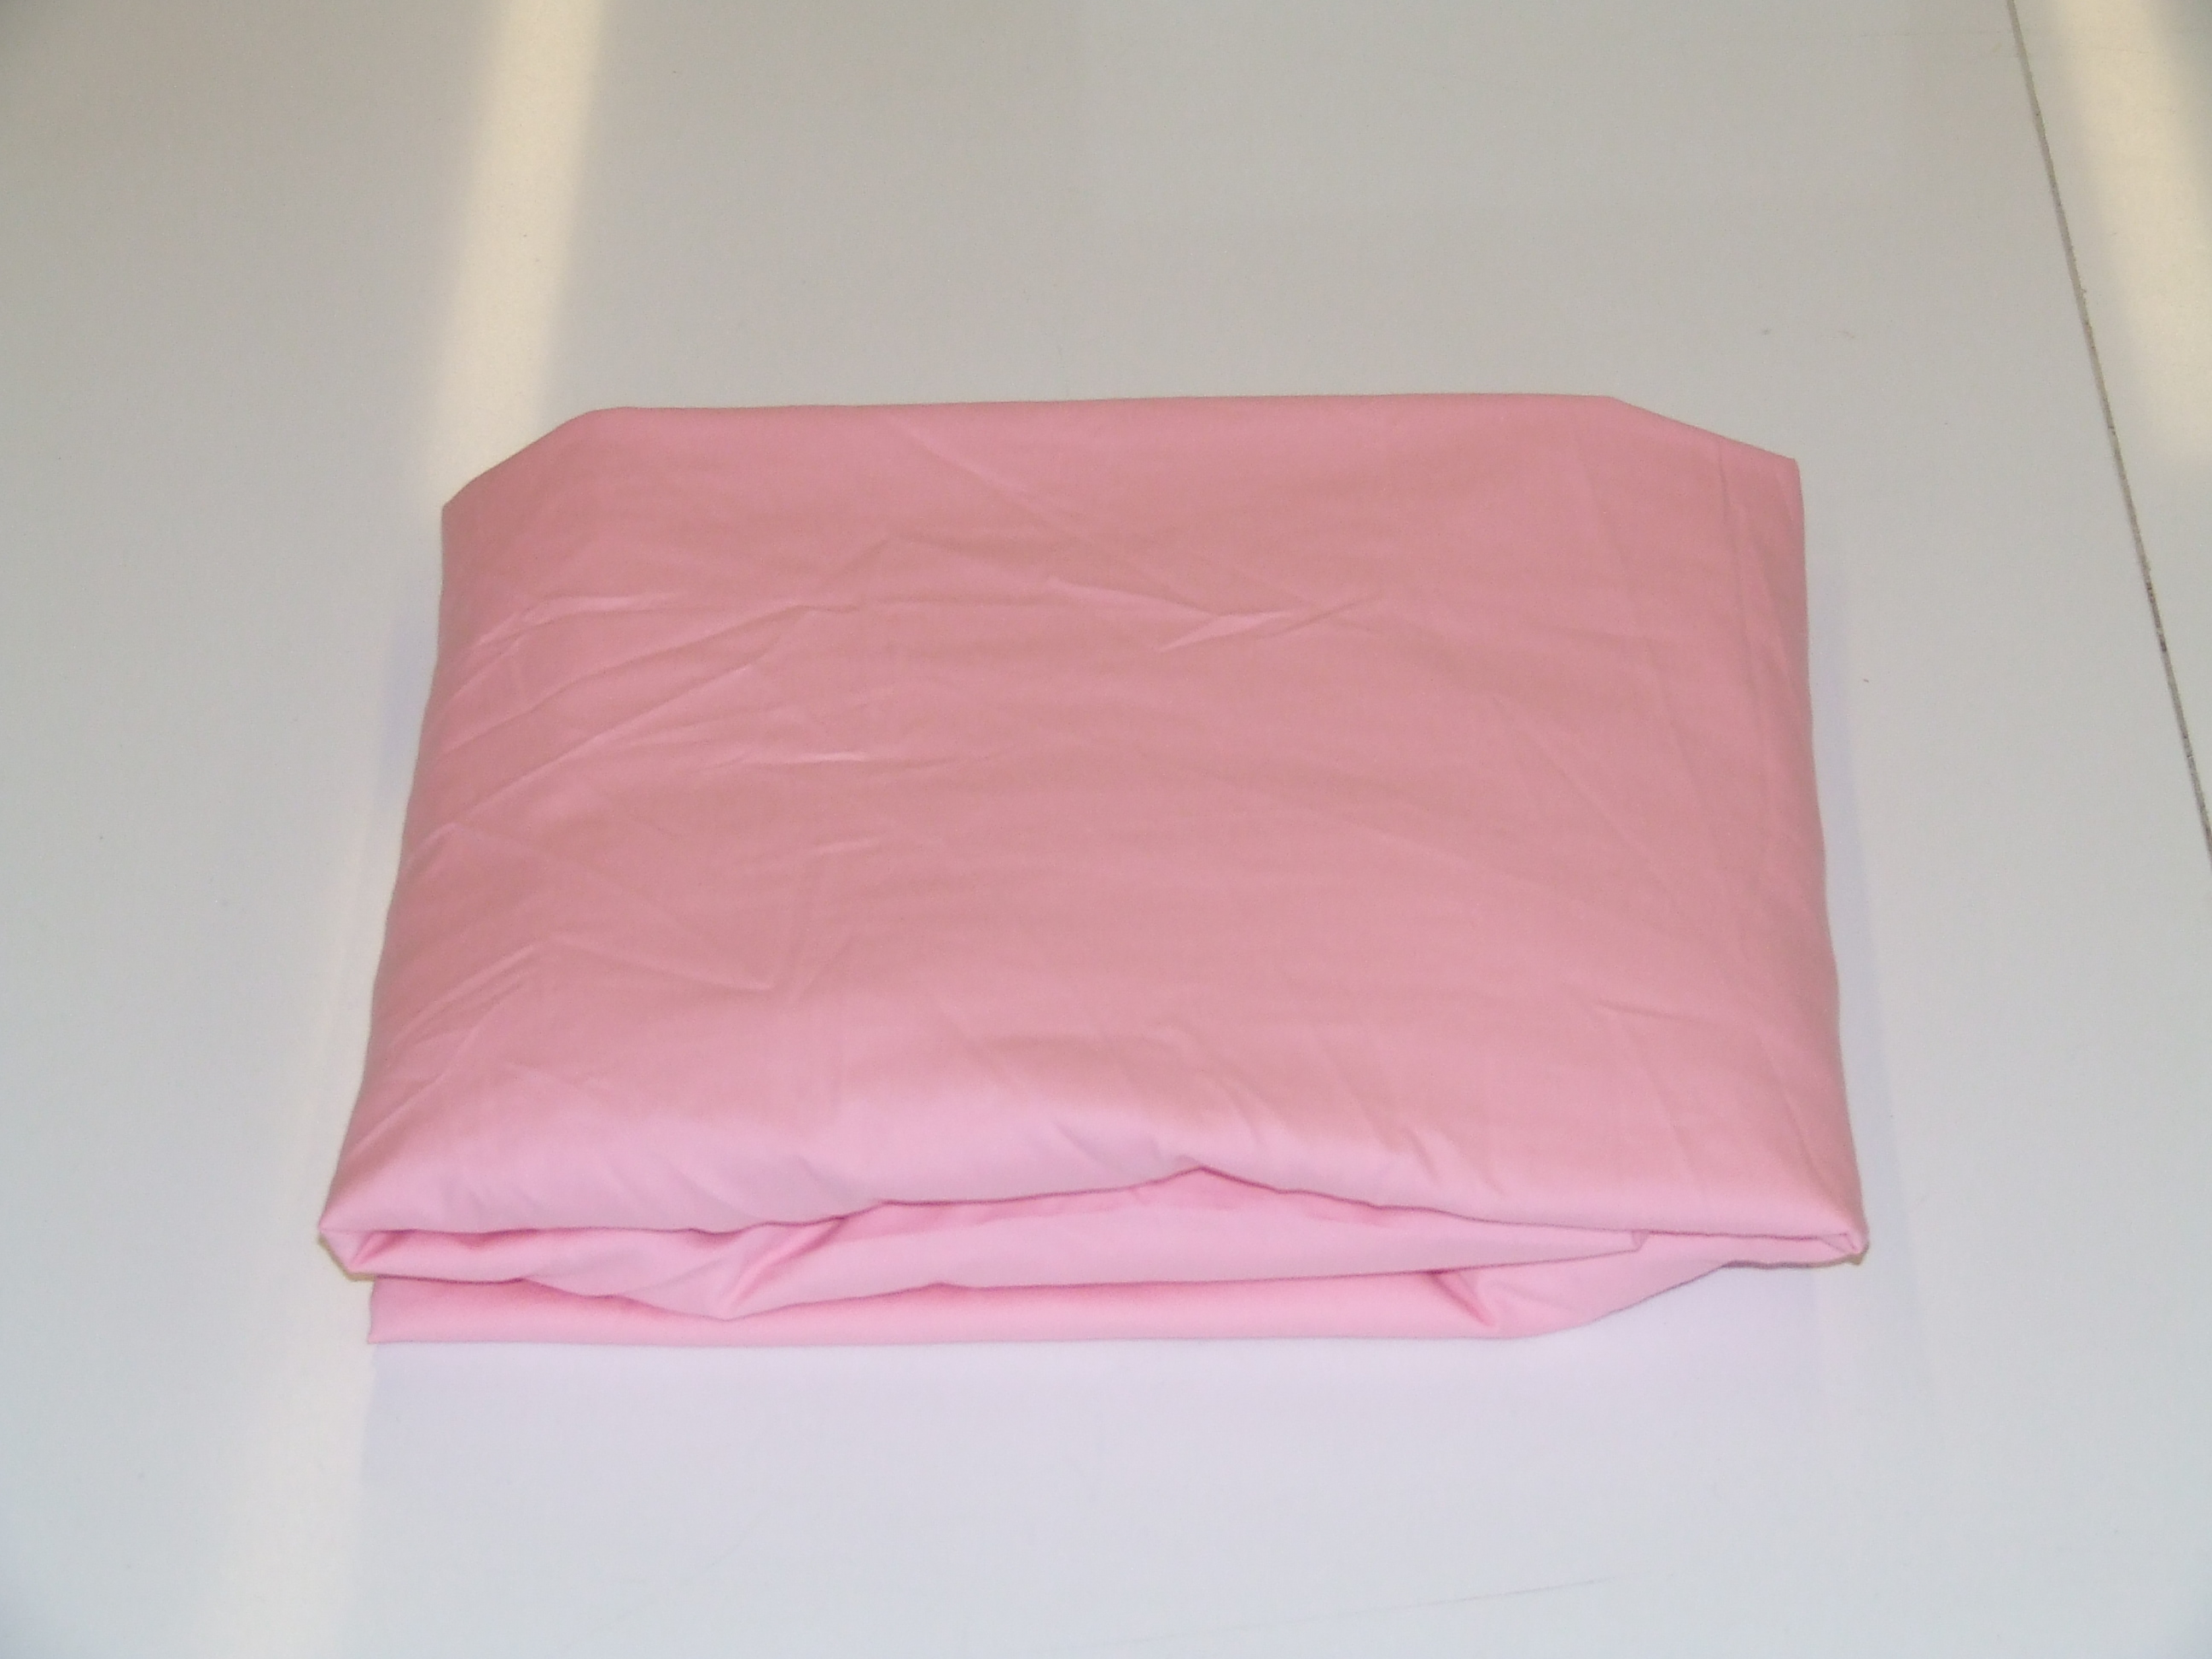 Evidently A Newly Laundered Fitted Sheet Can Look Like This After Folding.